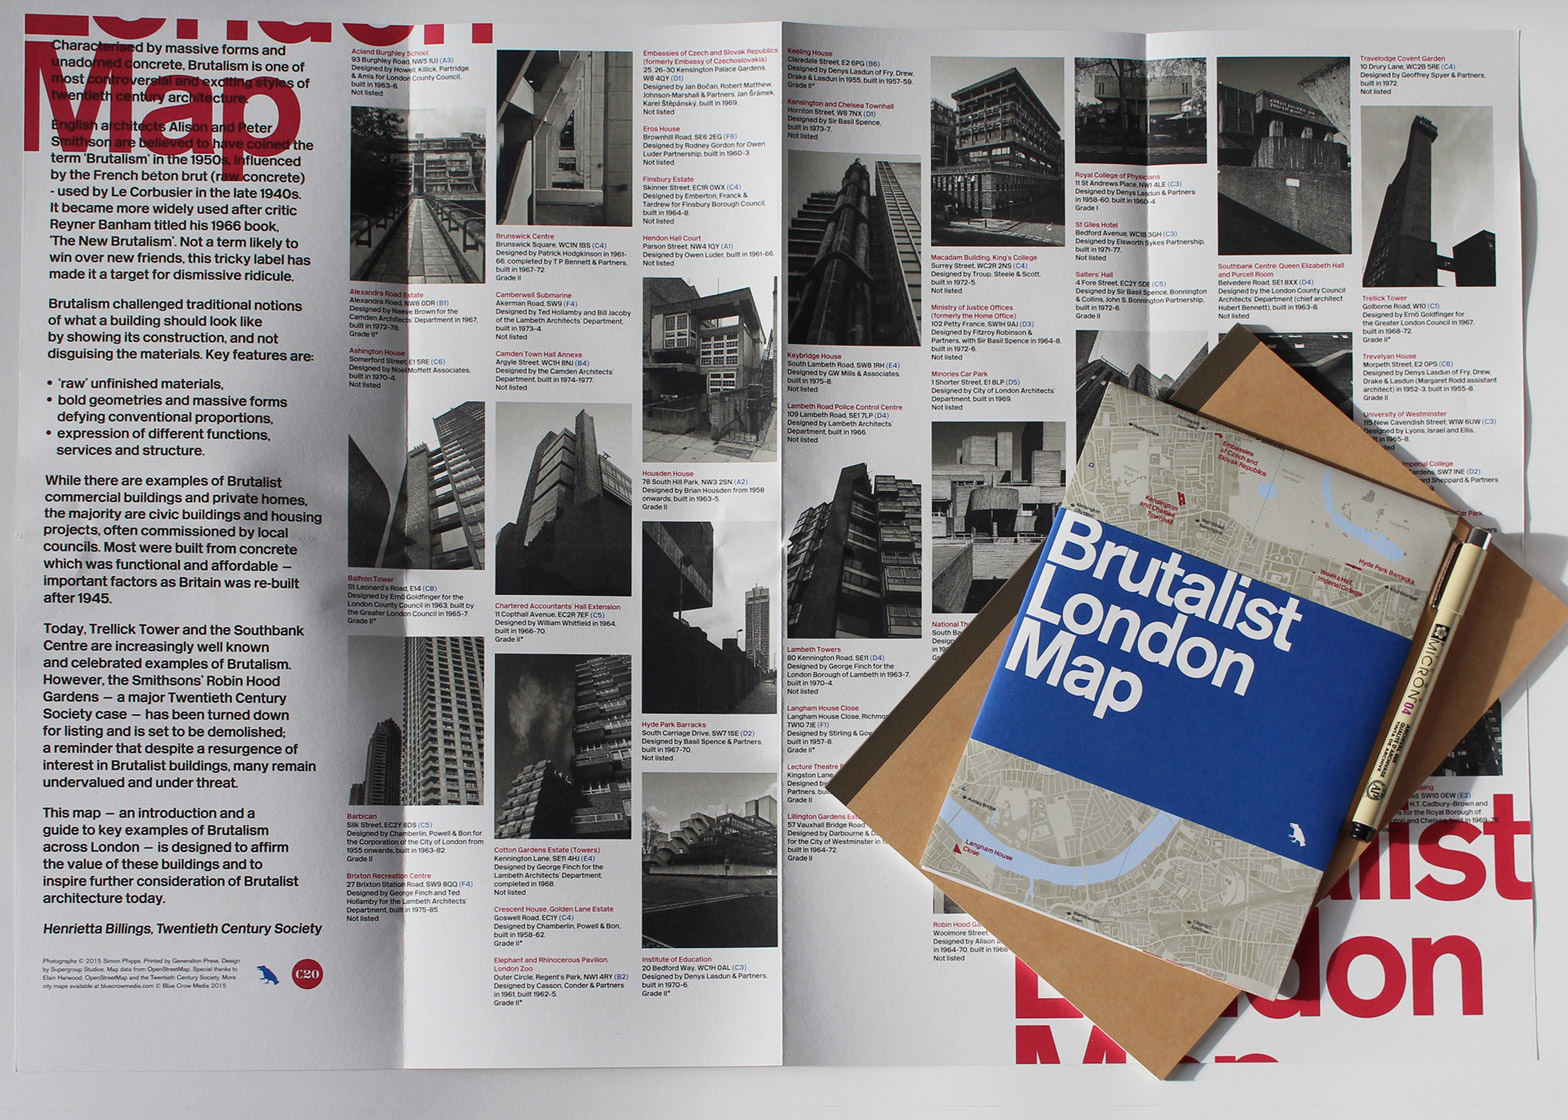 Brutalist London Map Twentieth Century Society